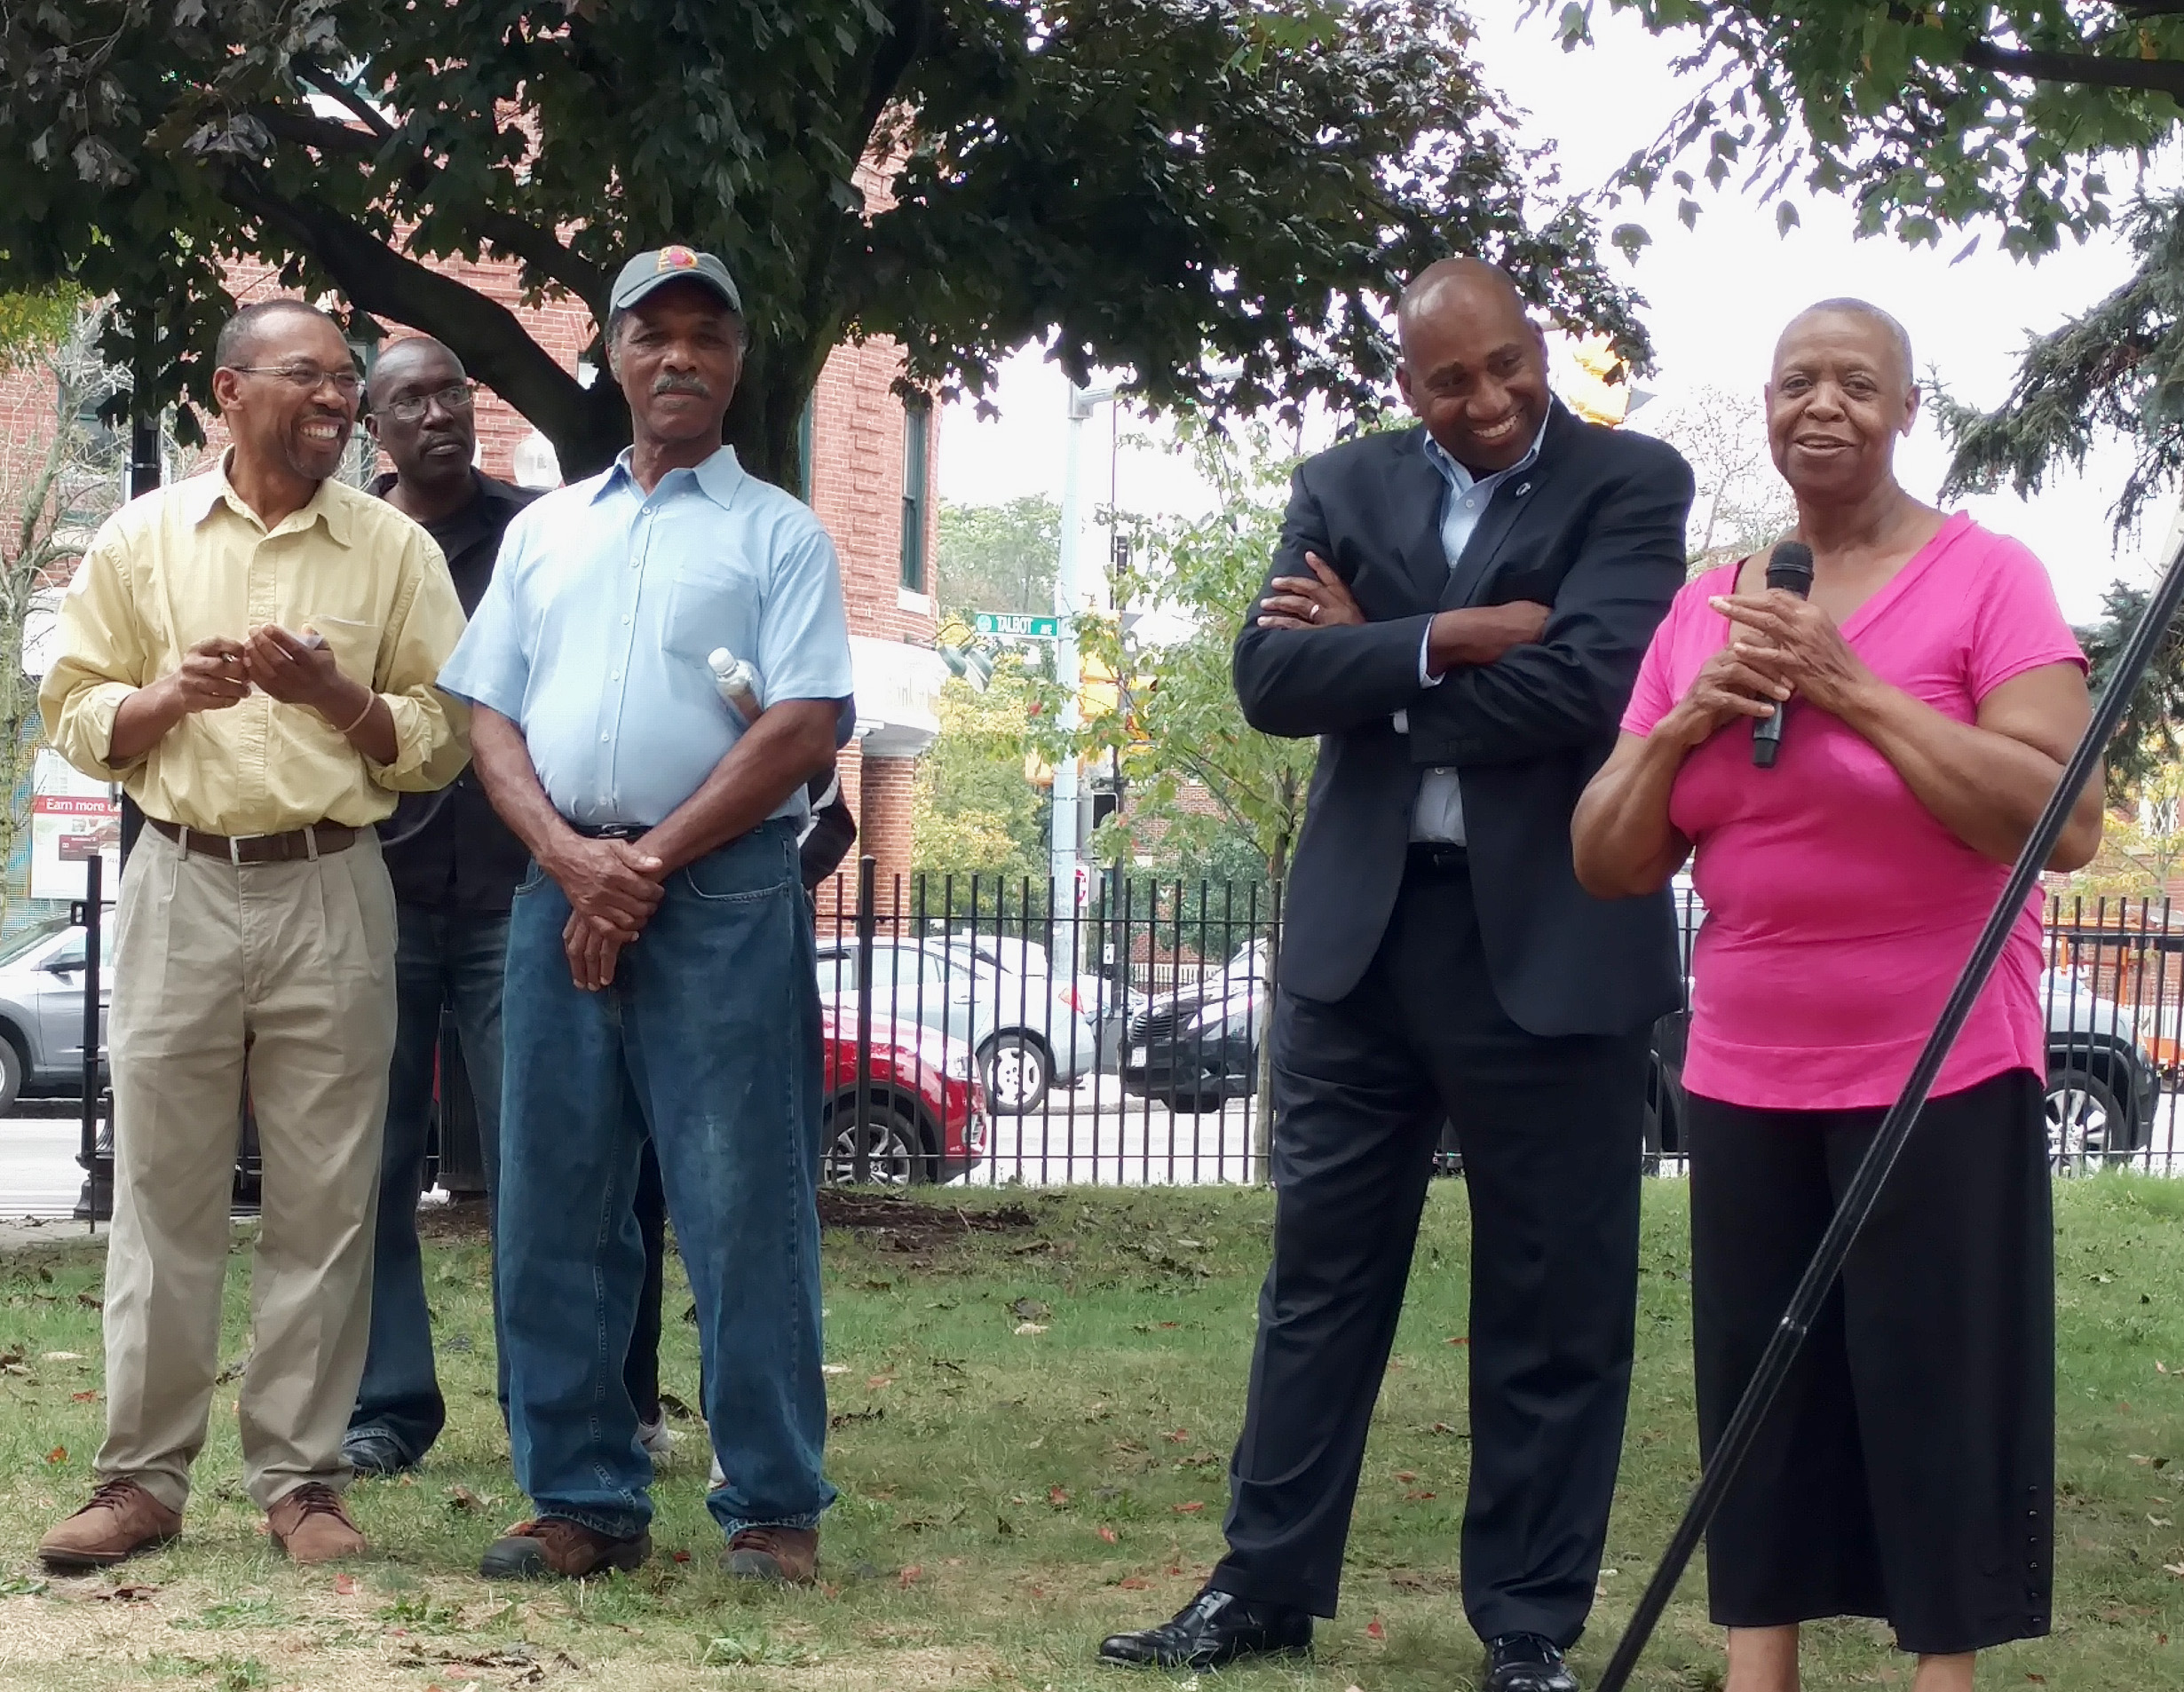 Elnora, Dorchester resident and solar participant, speaks at the Sun for All Celebration in Codman Square Park.